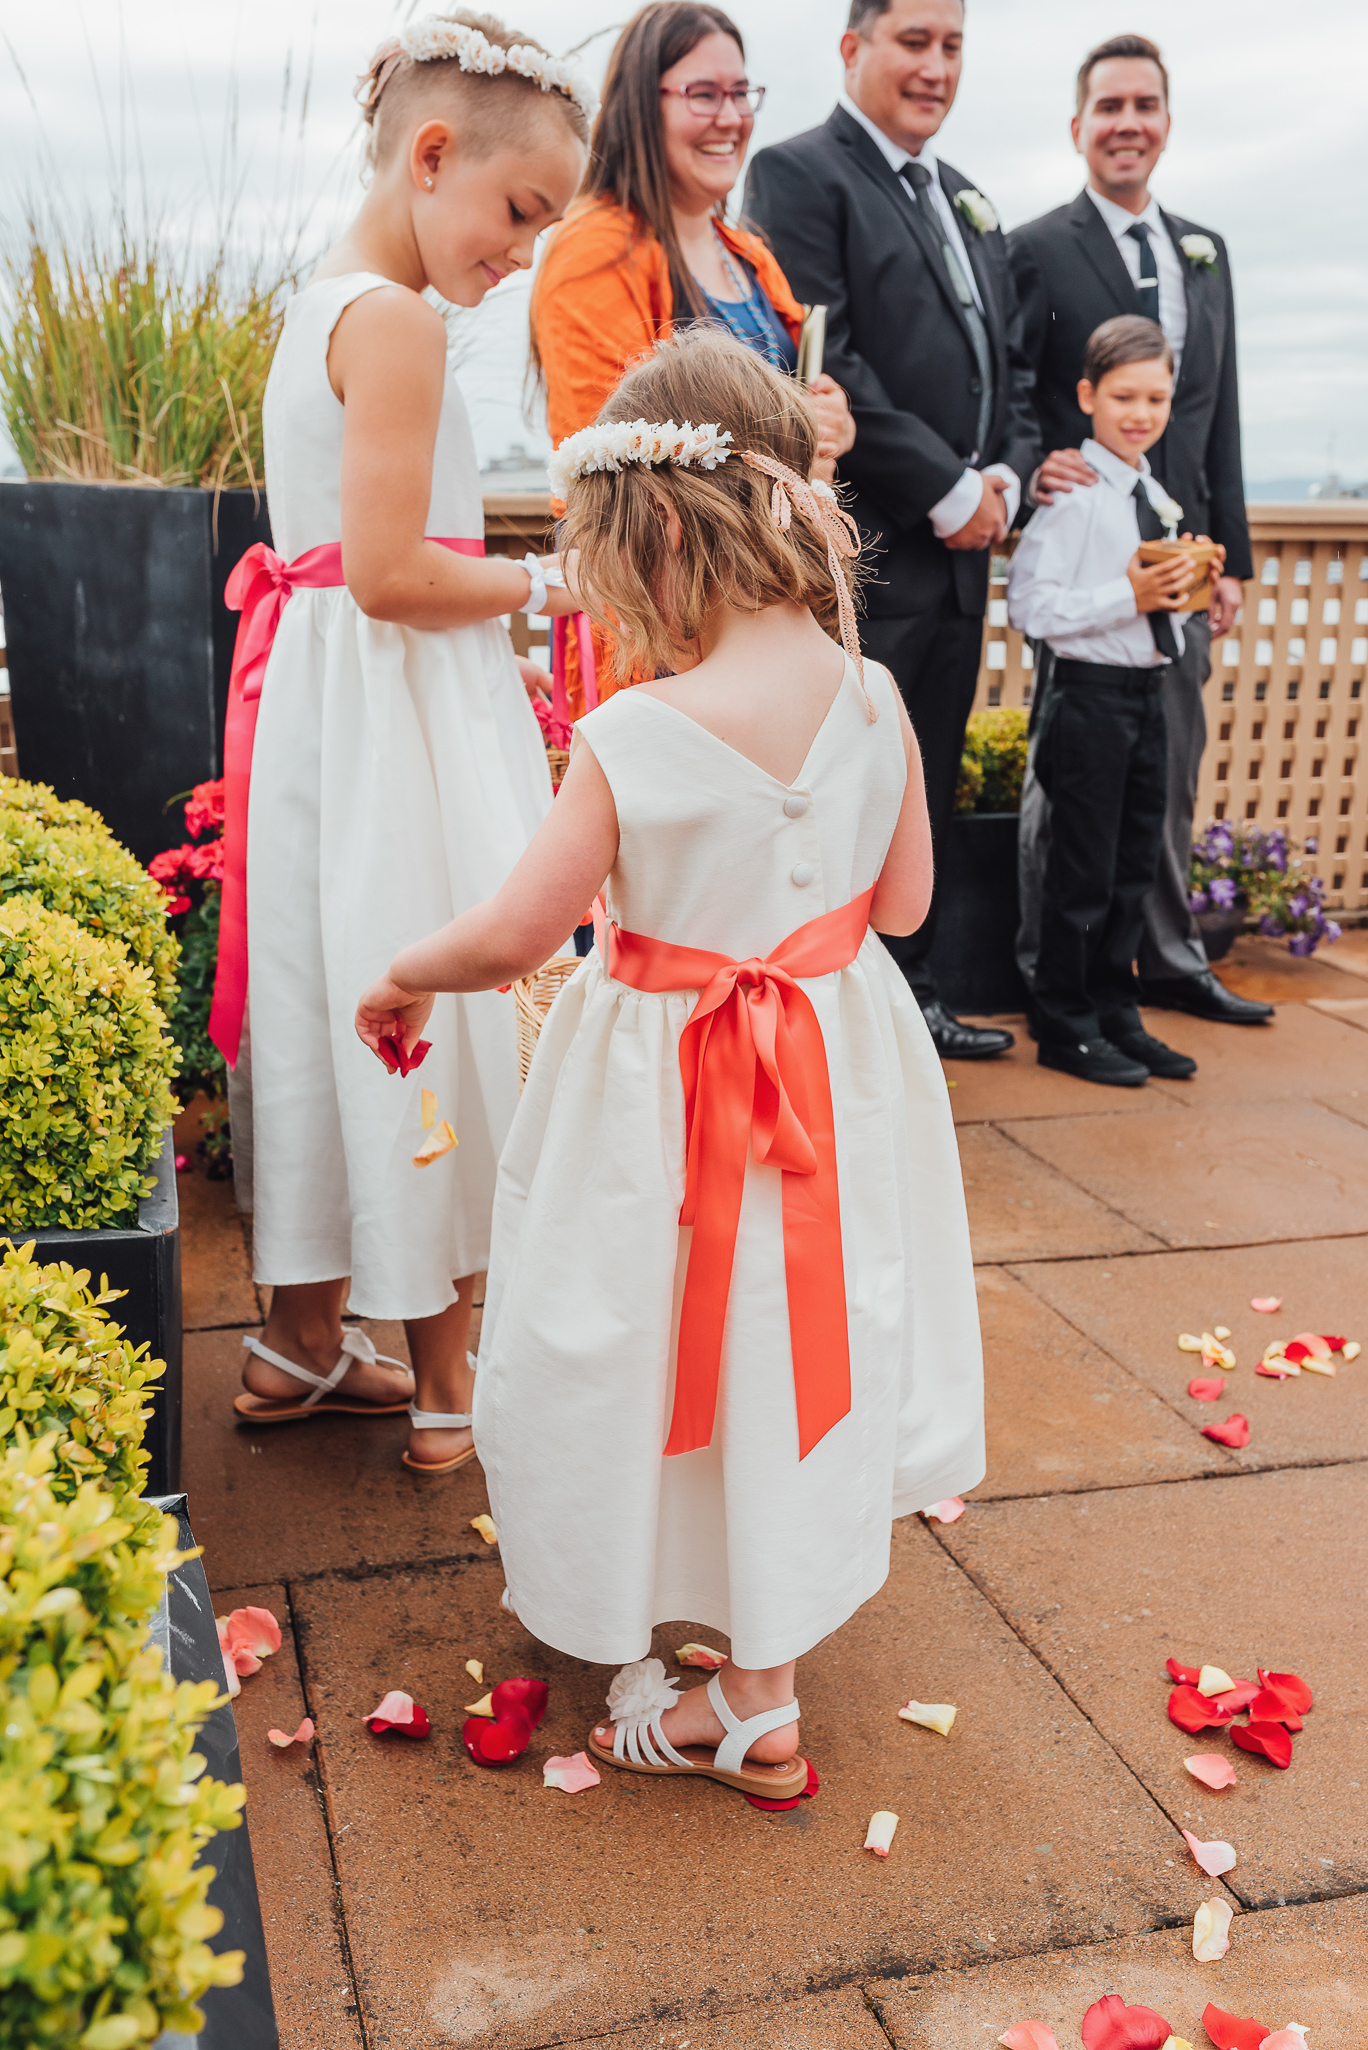 Lily_and_Lane_Childrens_Photographer_Victoria_BC-25.jpg